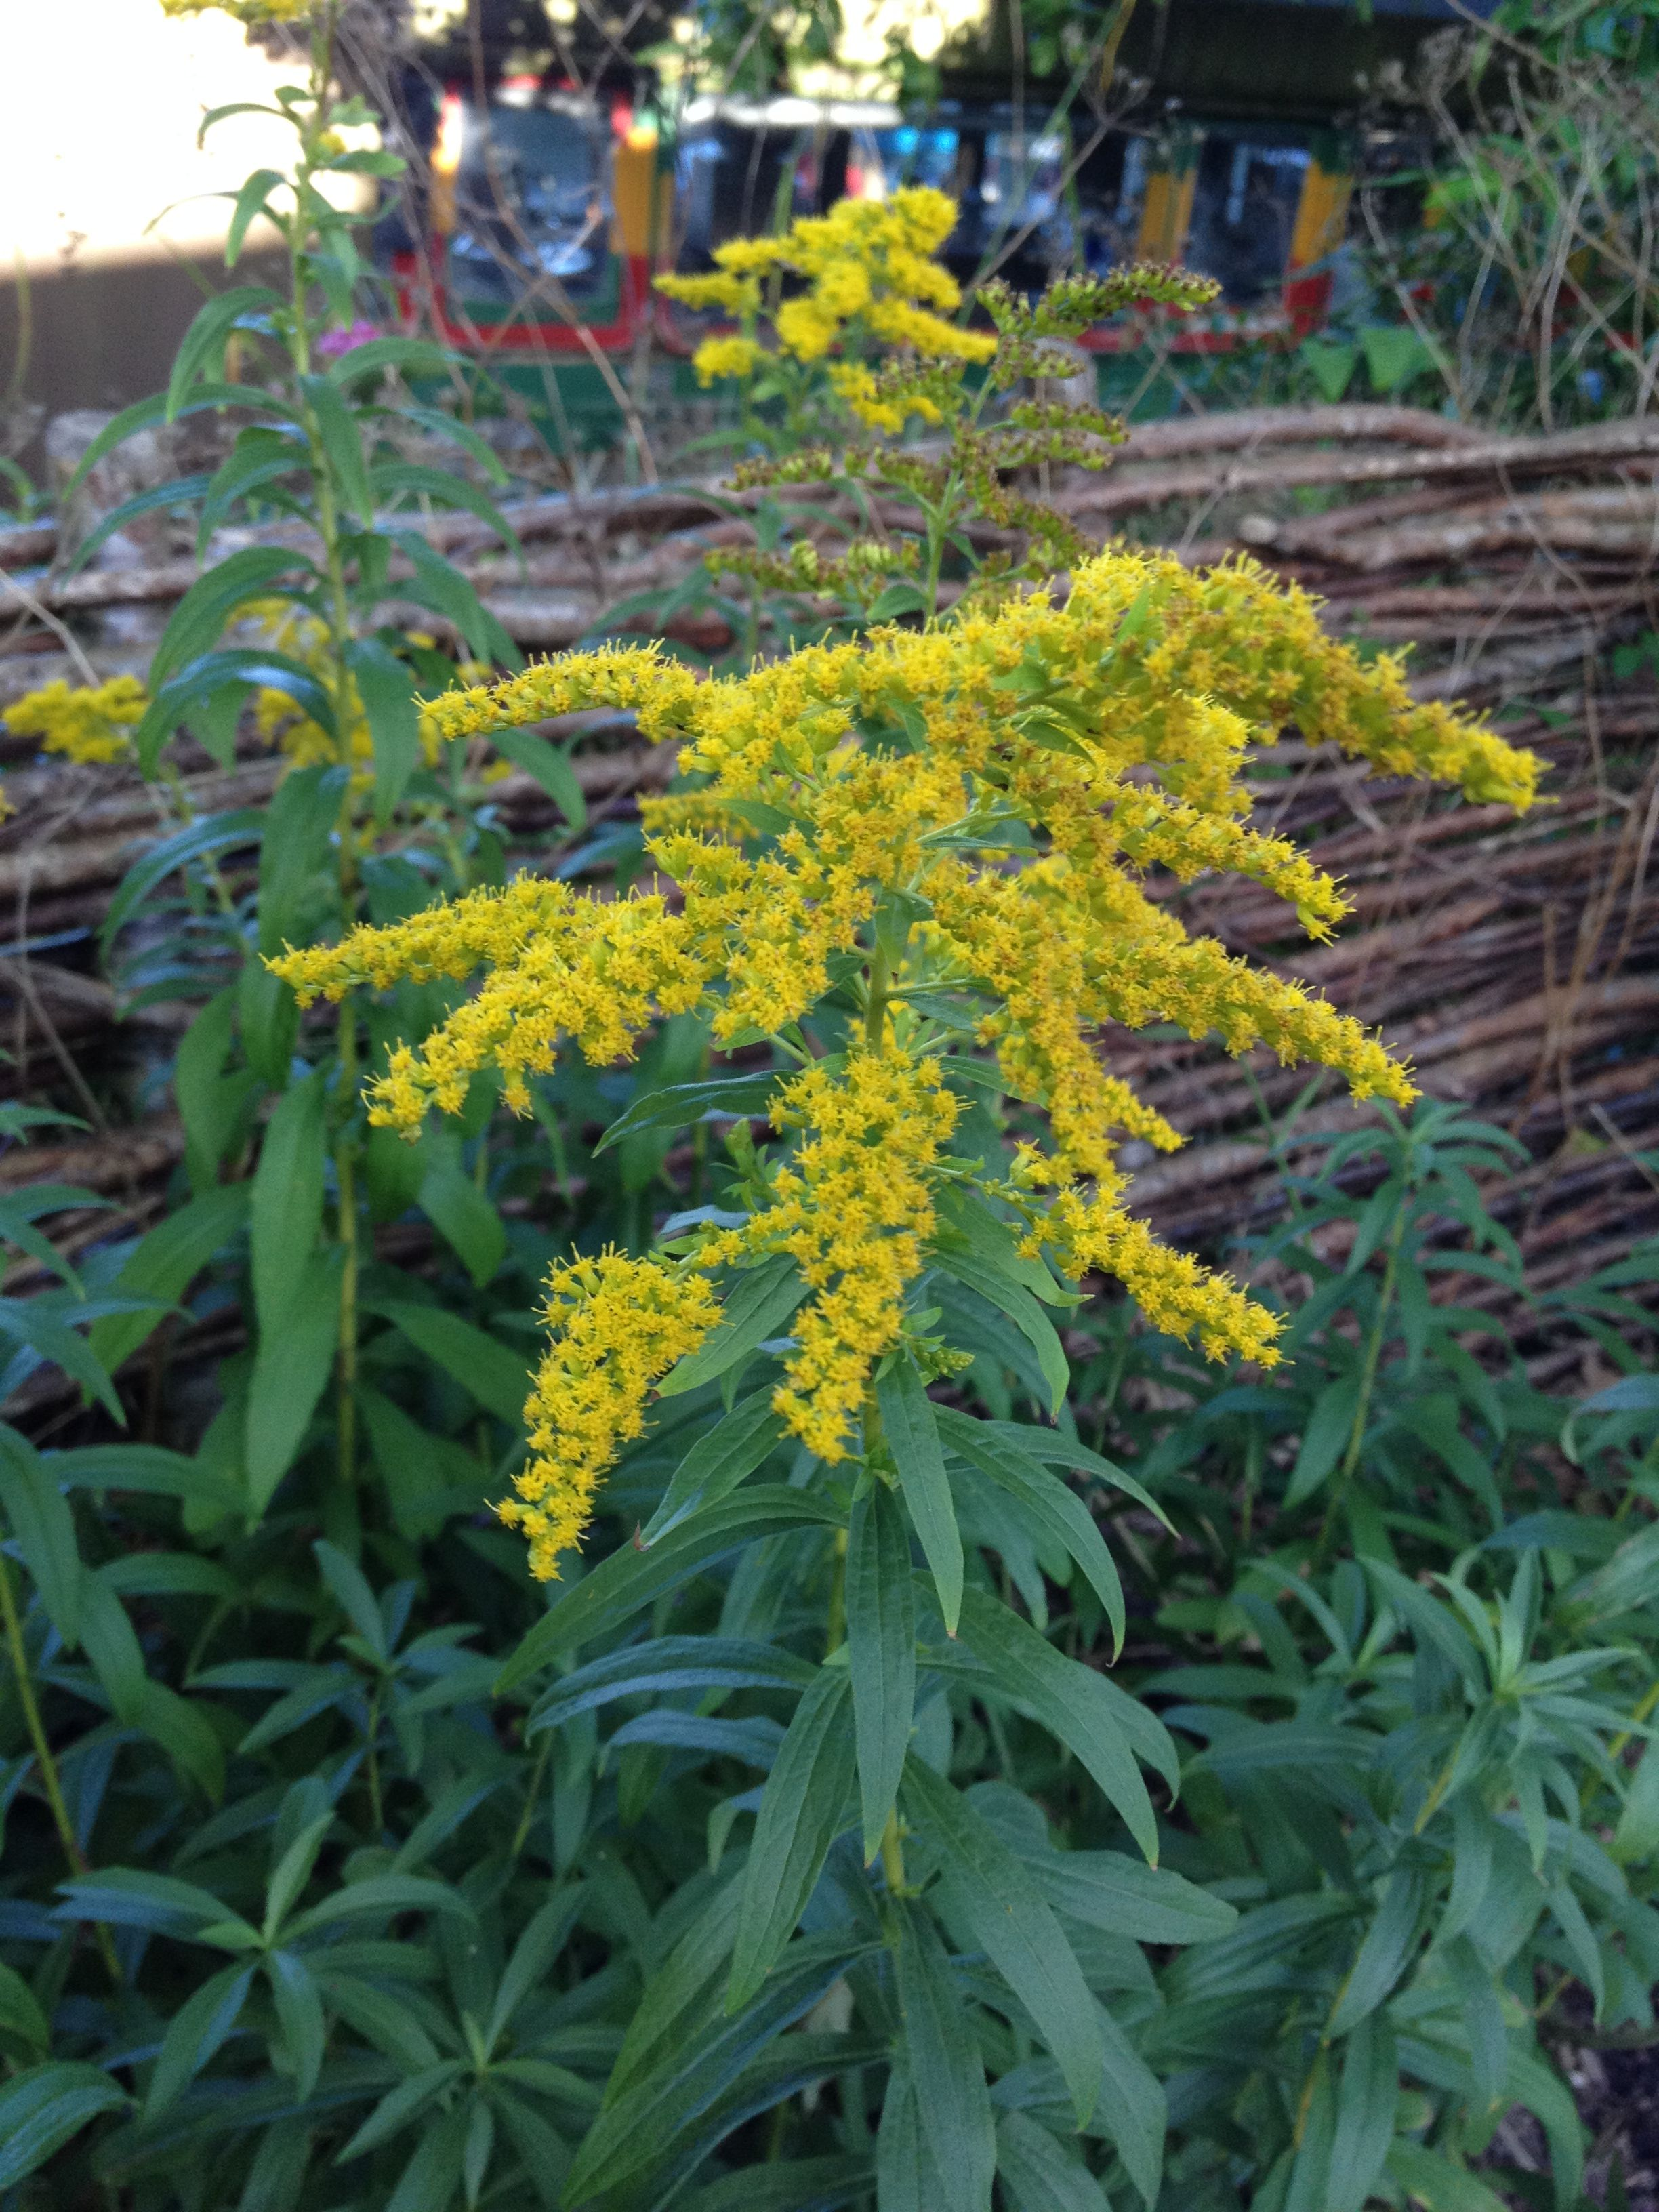 20th August Golden Rod In The Autumn And Winter These Flowers Turn